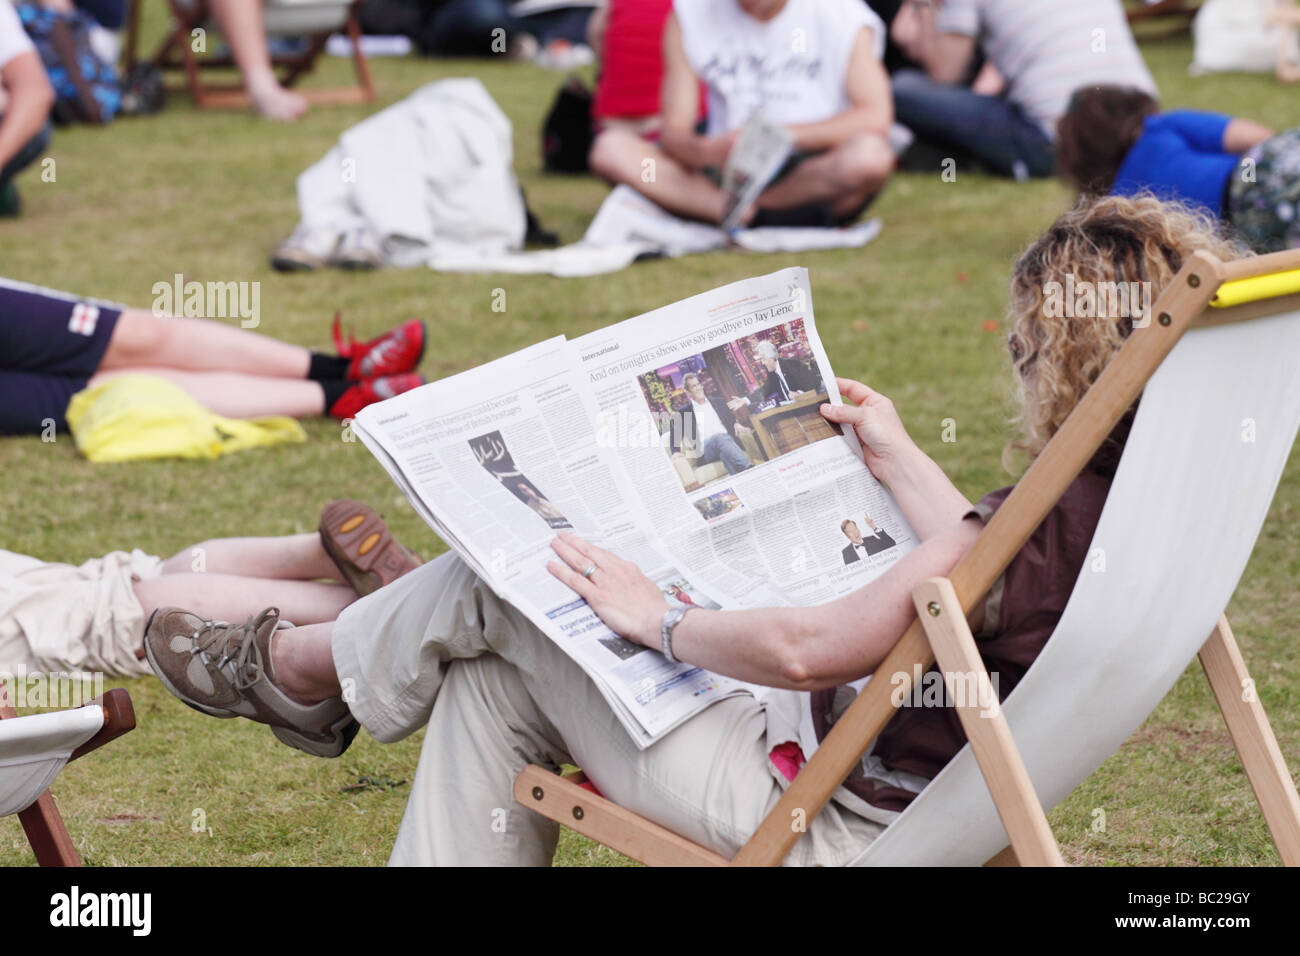 Hay Festival woman relaxing reading a newspaper sat in a deckchair on the grass lawns at the Hay Festival May 2009 - Stock Image